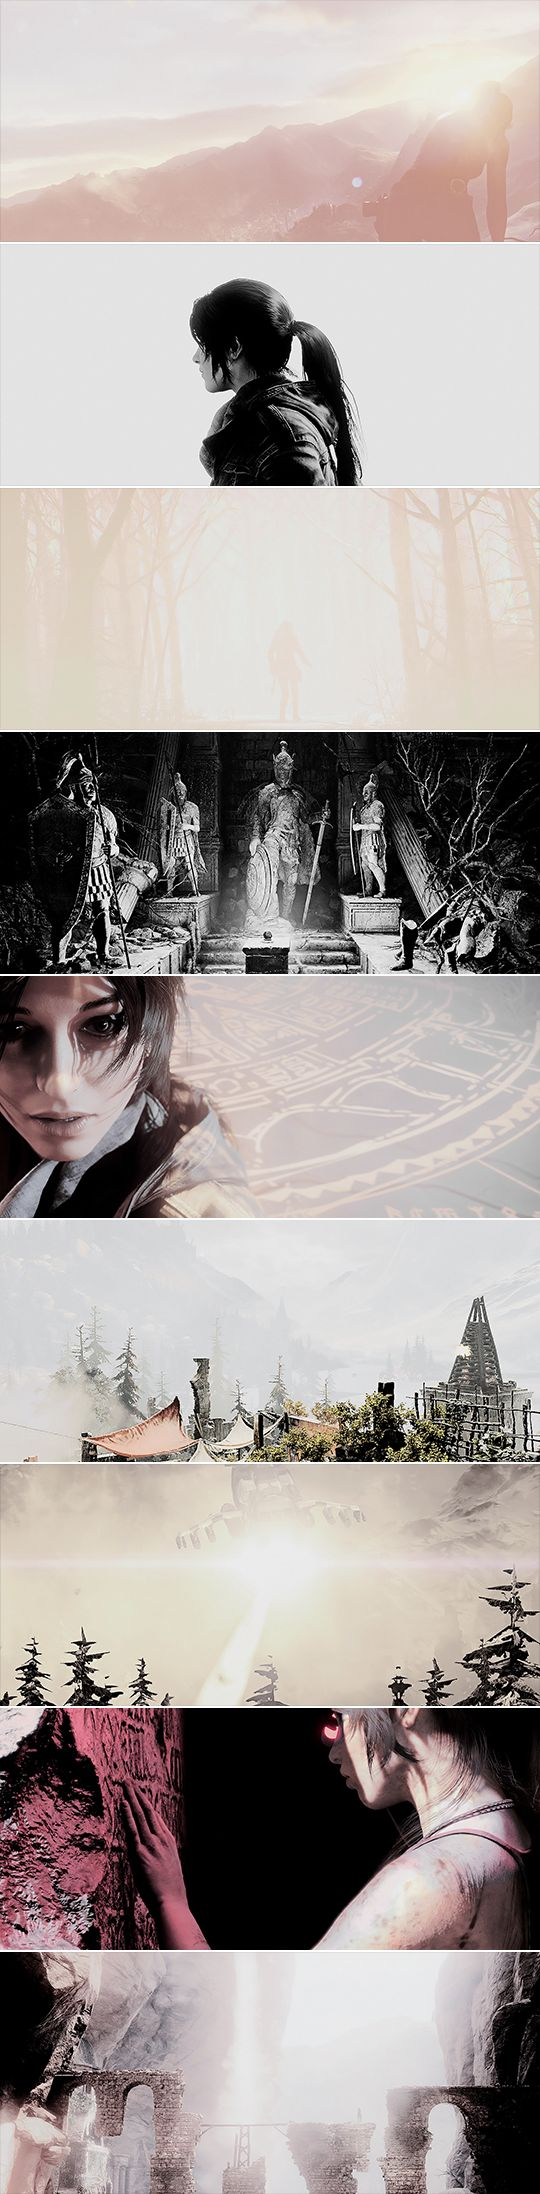 - y o u    d o n ' t    k n o w    h o w    f a r    i ' v e    c o m e . -             //                                             rise of the tomb raider (2015)